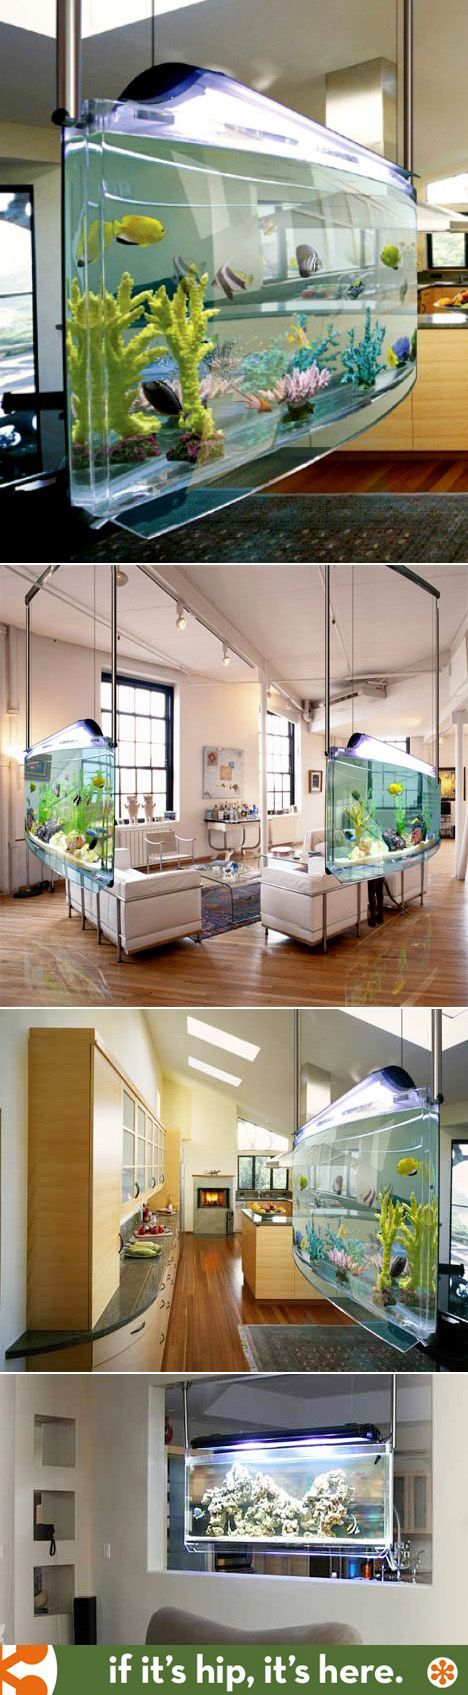 Fish tank in the floor - The Spacearium A Wonderful Suspended Fish Tank Aquarium From Aquatic Perfection